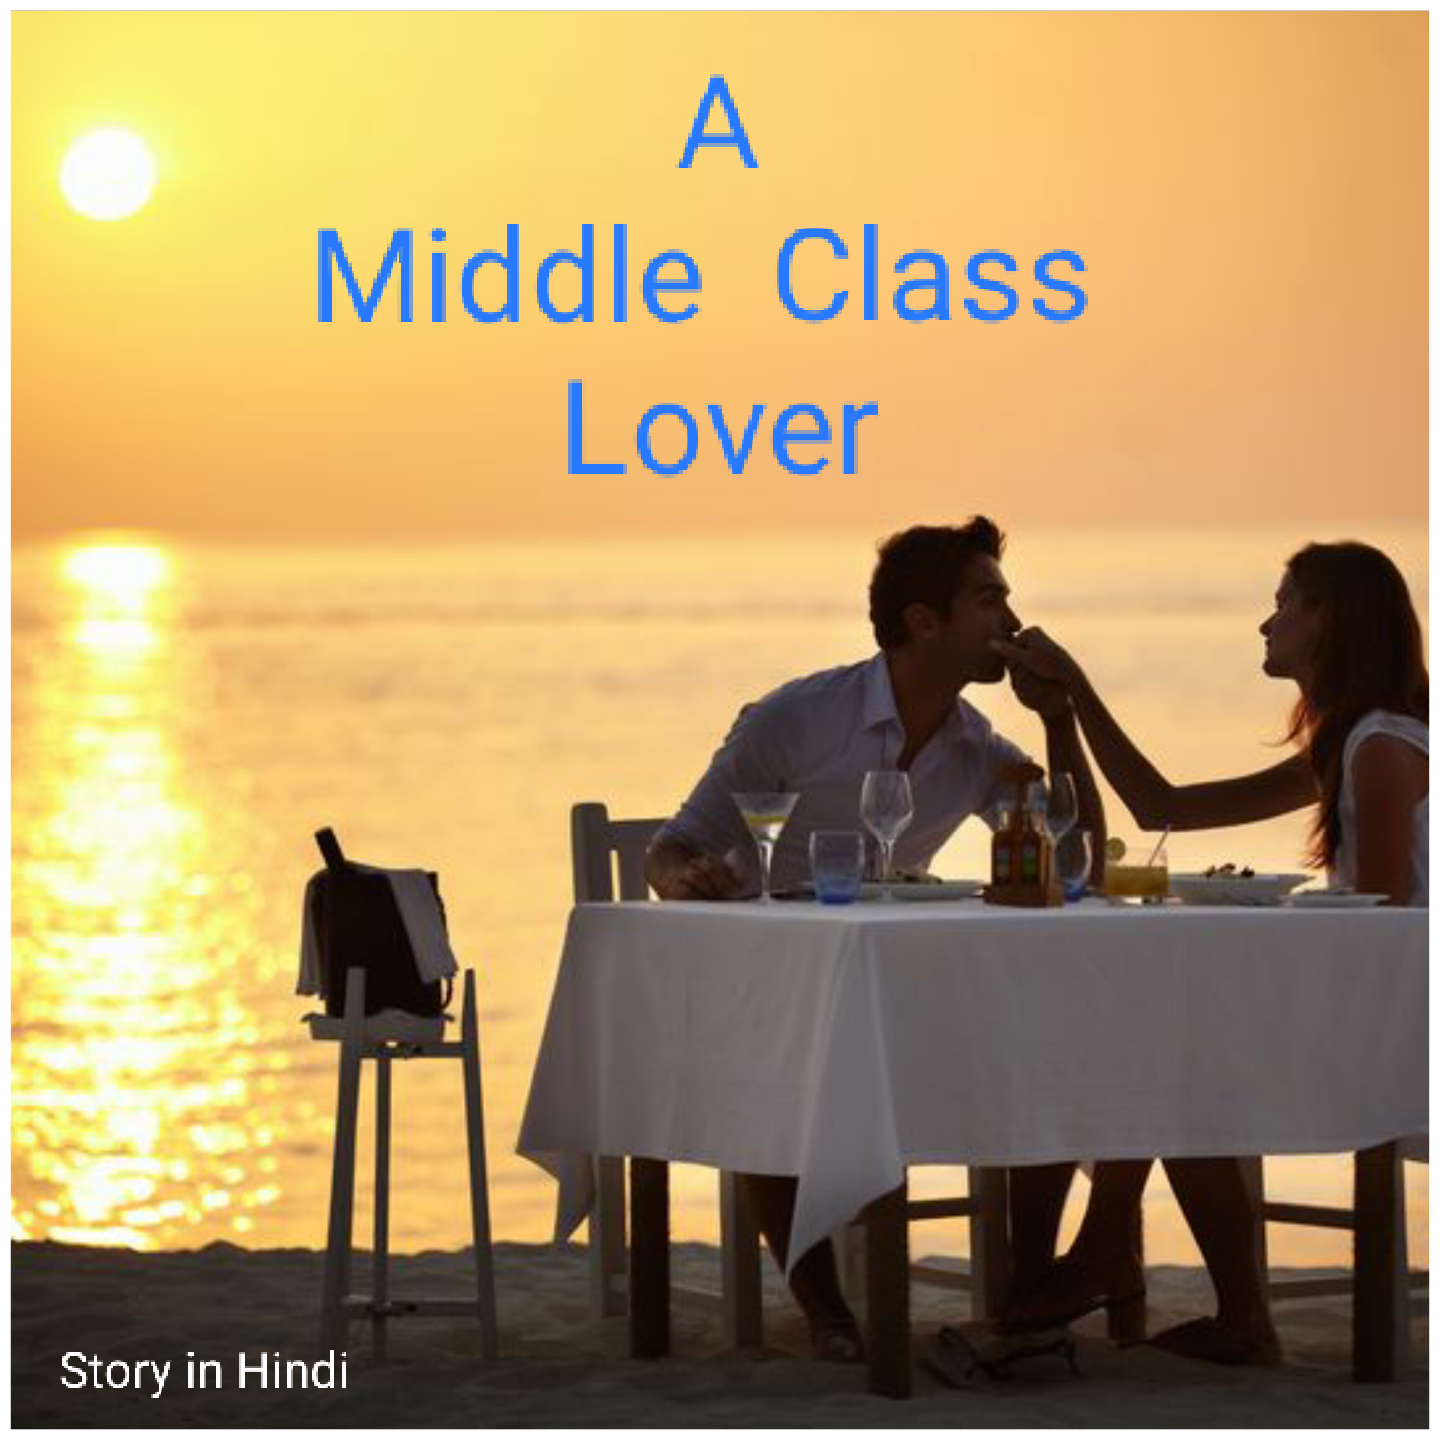 Middle Class Lover, Middle Class Family, Belong